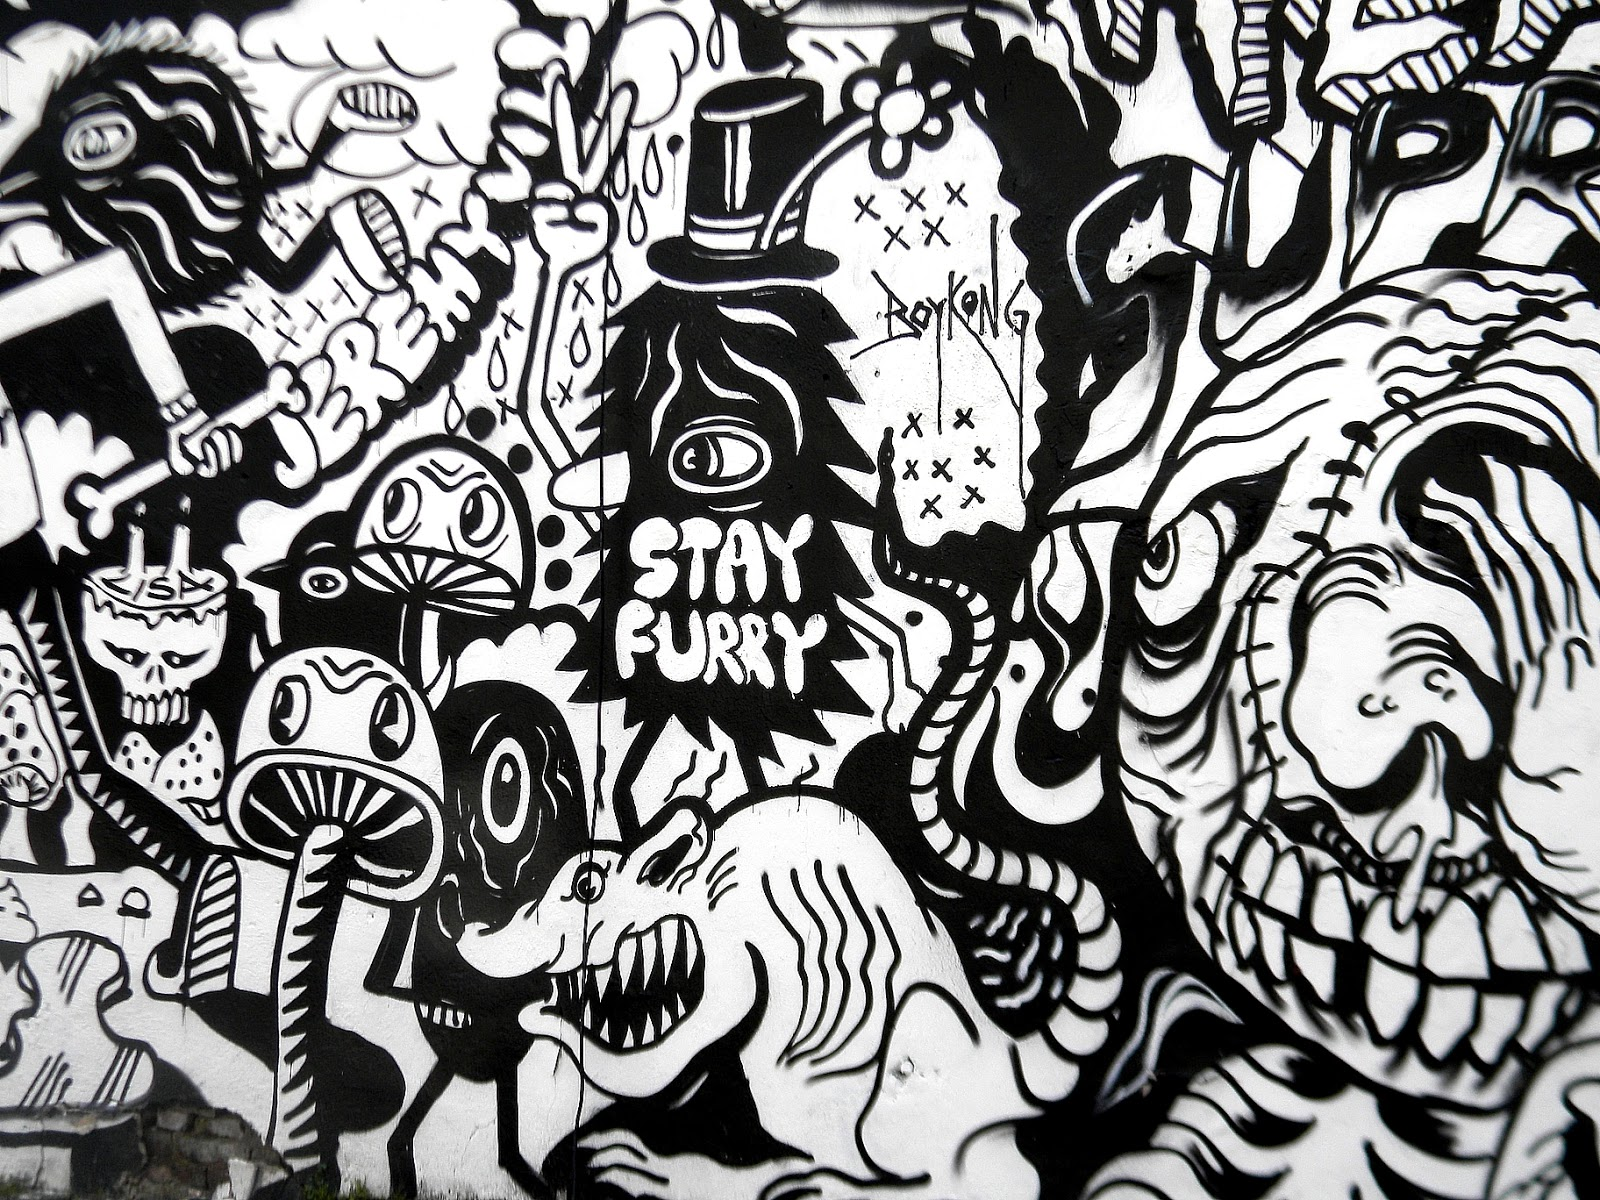 Street Art Graffiti Black And White | www.pixshark.com ...